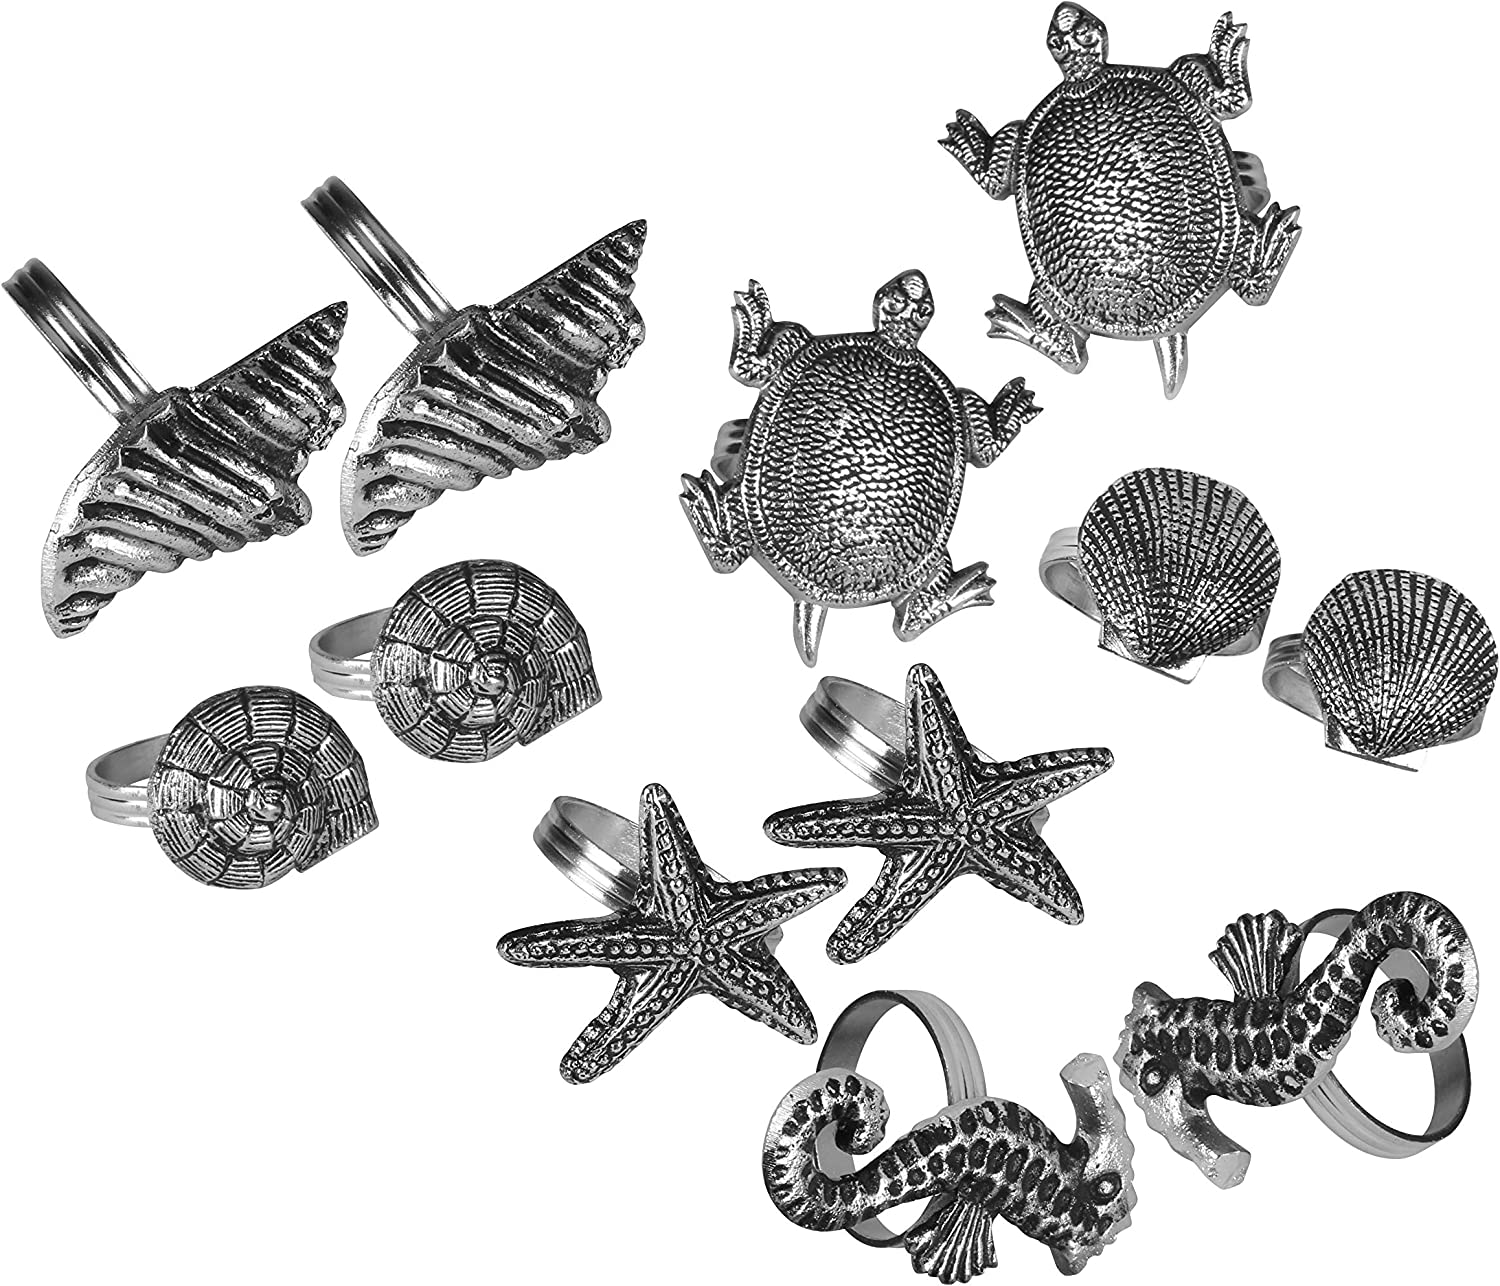 Coastal Theme Sea Shells Metal Napkin Rings - Set of 12 For Dinner Parties, Weddings Receptions, Family Gatherings, or Everyday Use - Set Your Style with Daily Use Table Décor Accessories (Antique)